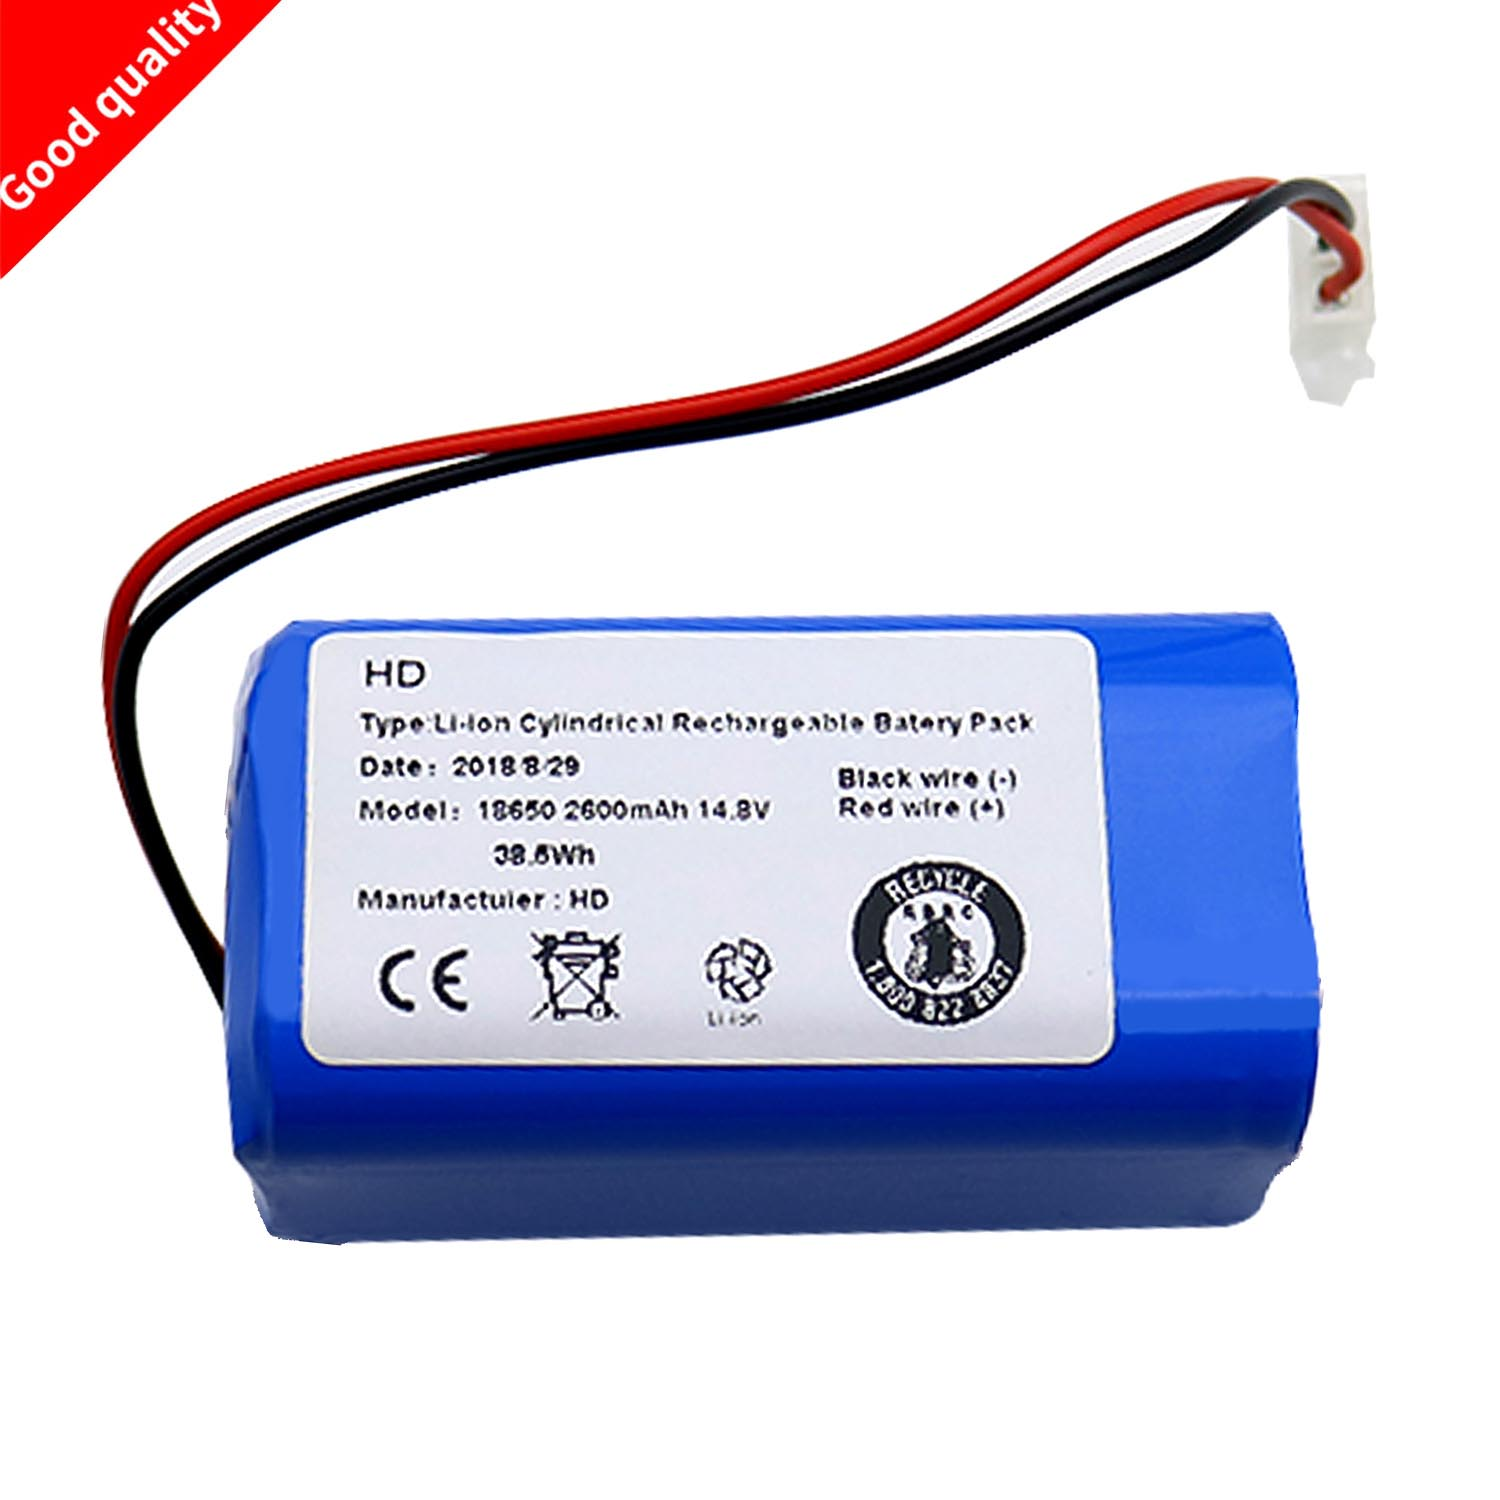 Rechargeable Battery For ILIFE Ecovacs For Chuwi Ilife A4 A4s A6 14.8V 2600mAh Robotic Vacuum Cleaner Accessories Parts